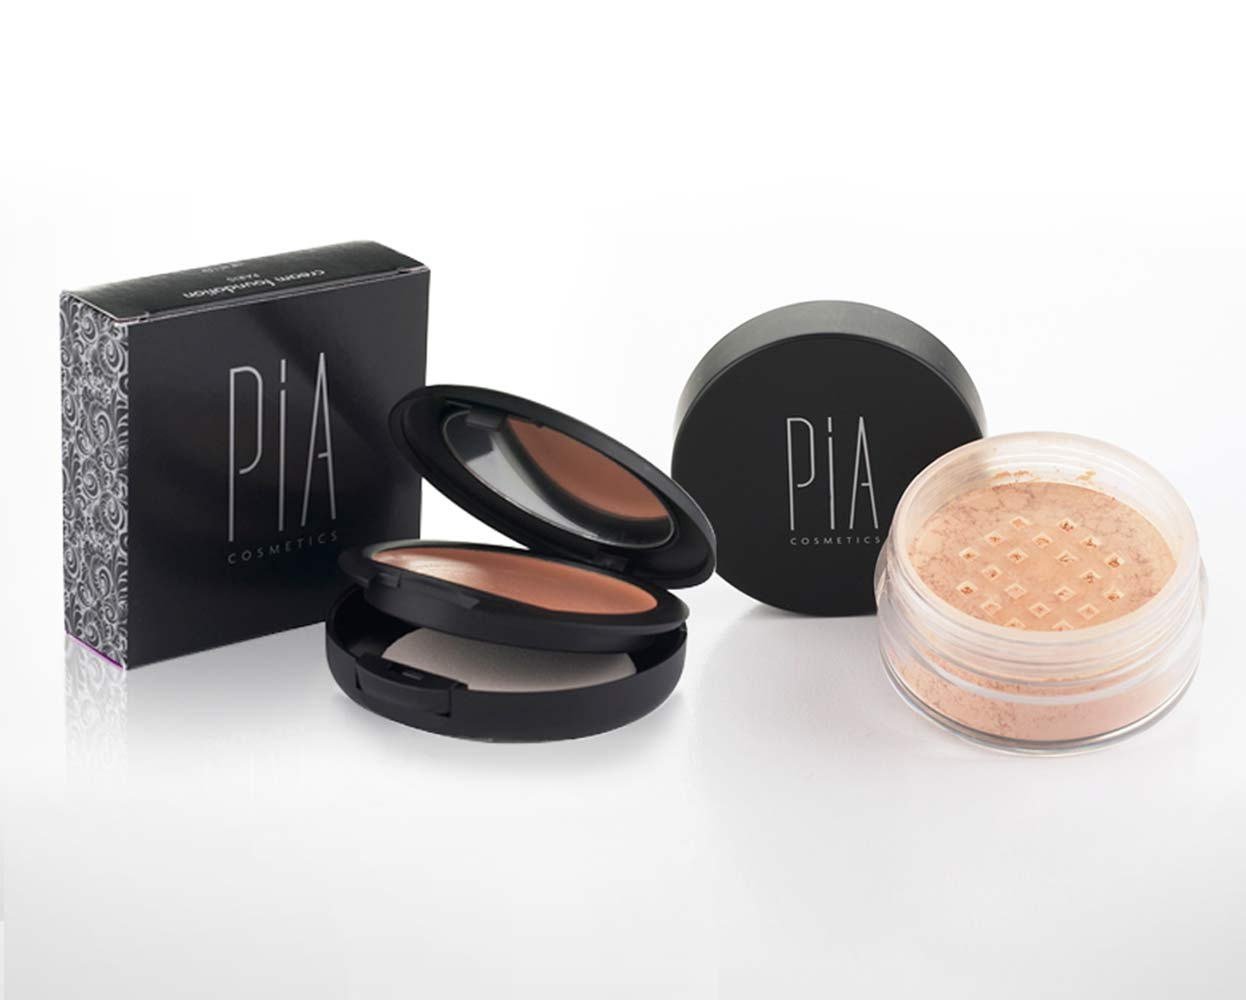 Pia Cosmetics Packaging